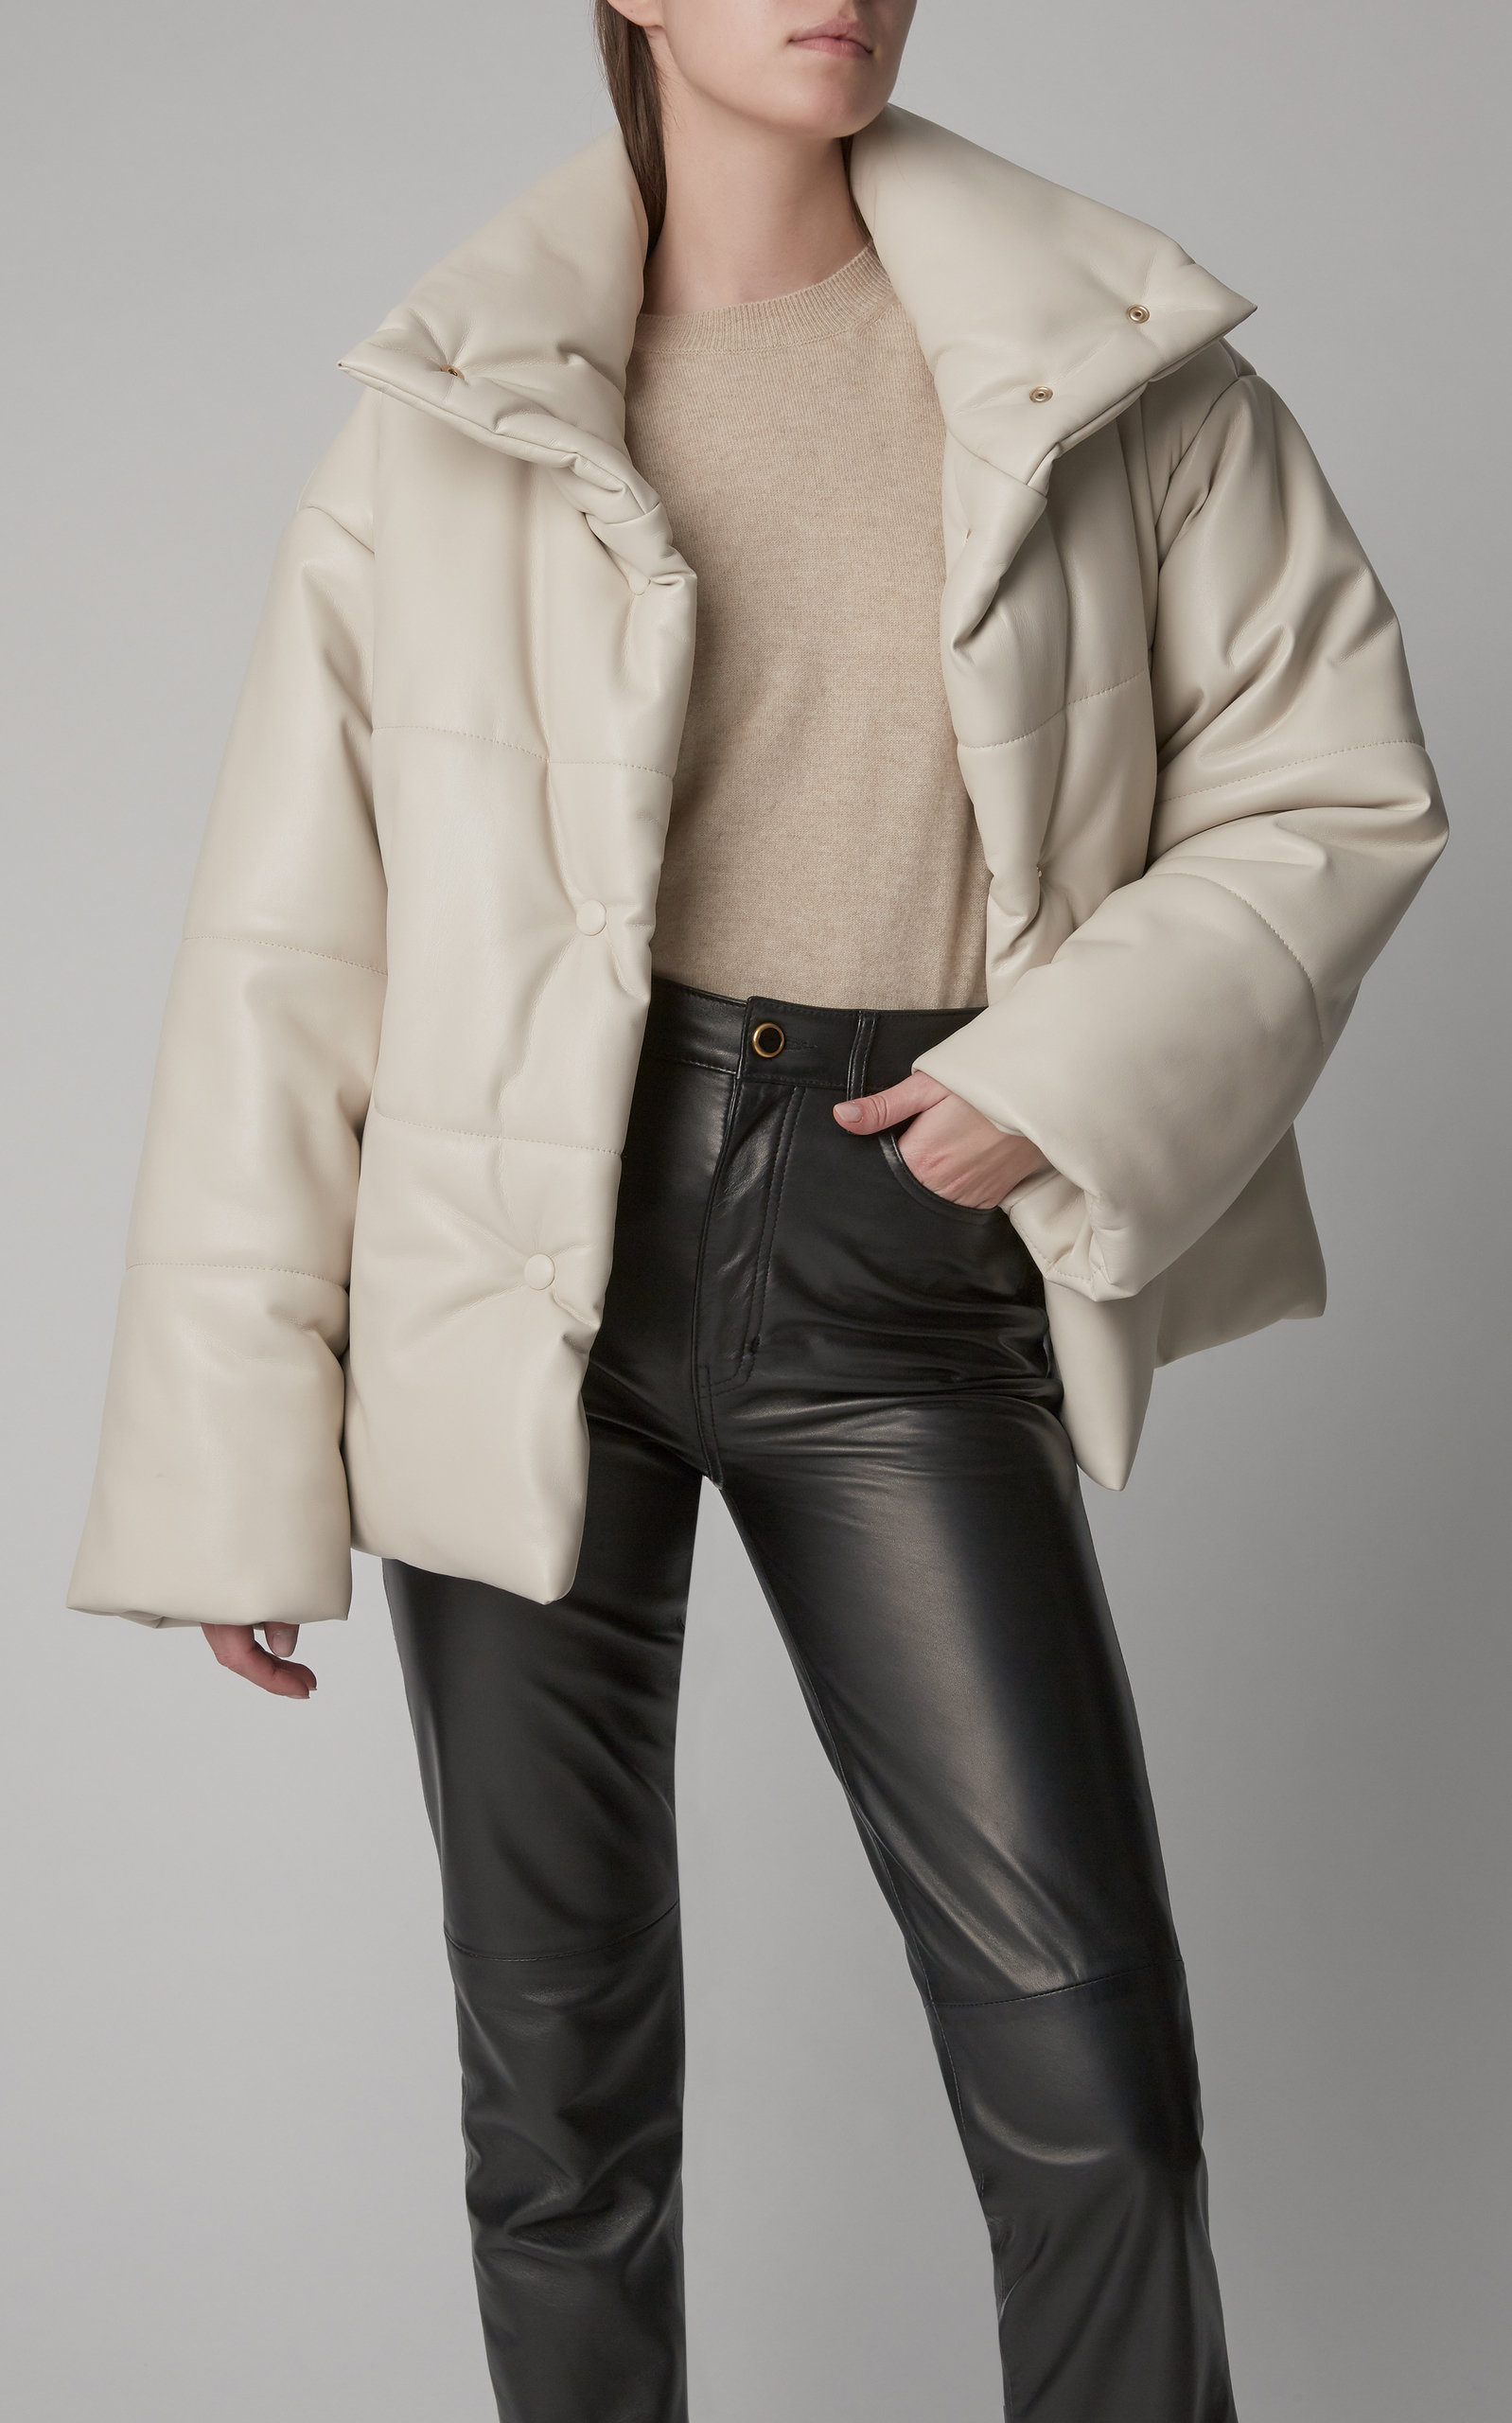 Hide Vegan Leather Puffer Coat By Nanushka Now Available On Moda Operandi Puffer Jacket Outfit Beige Outfit Black White Outfit [ 2560 x 1598 Pixel ]